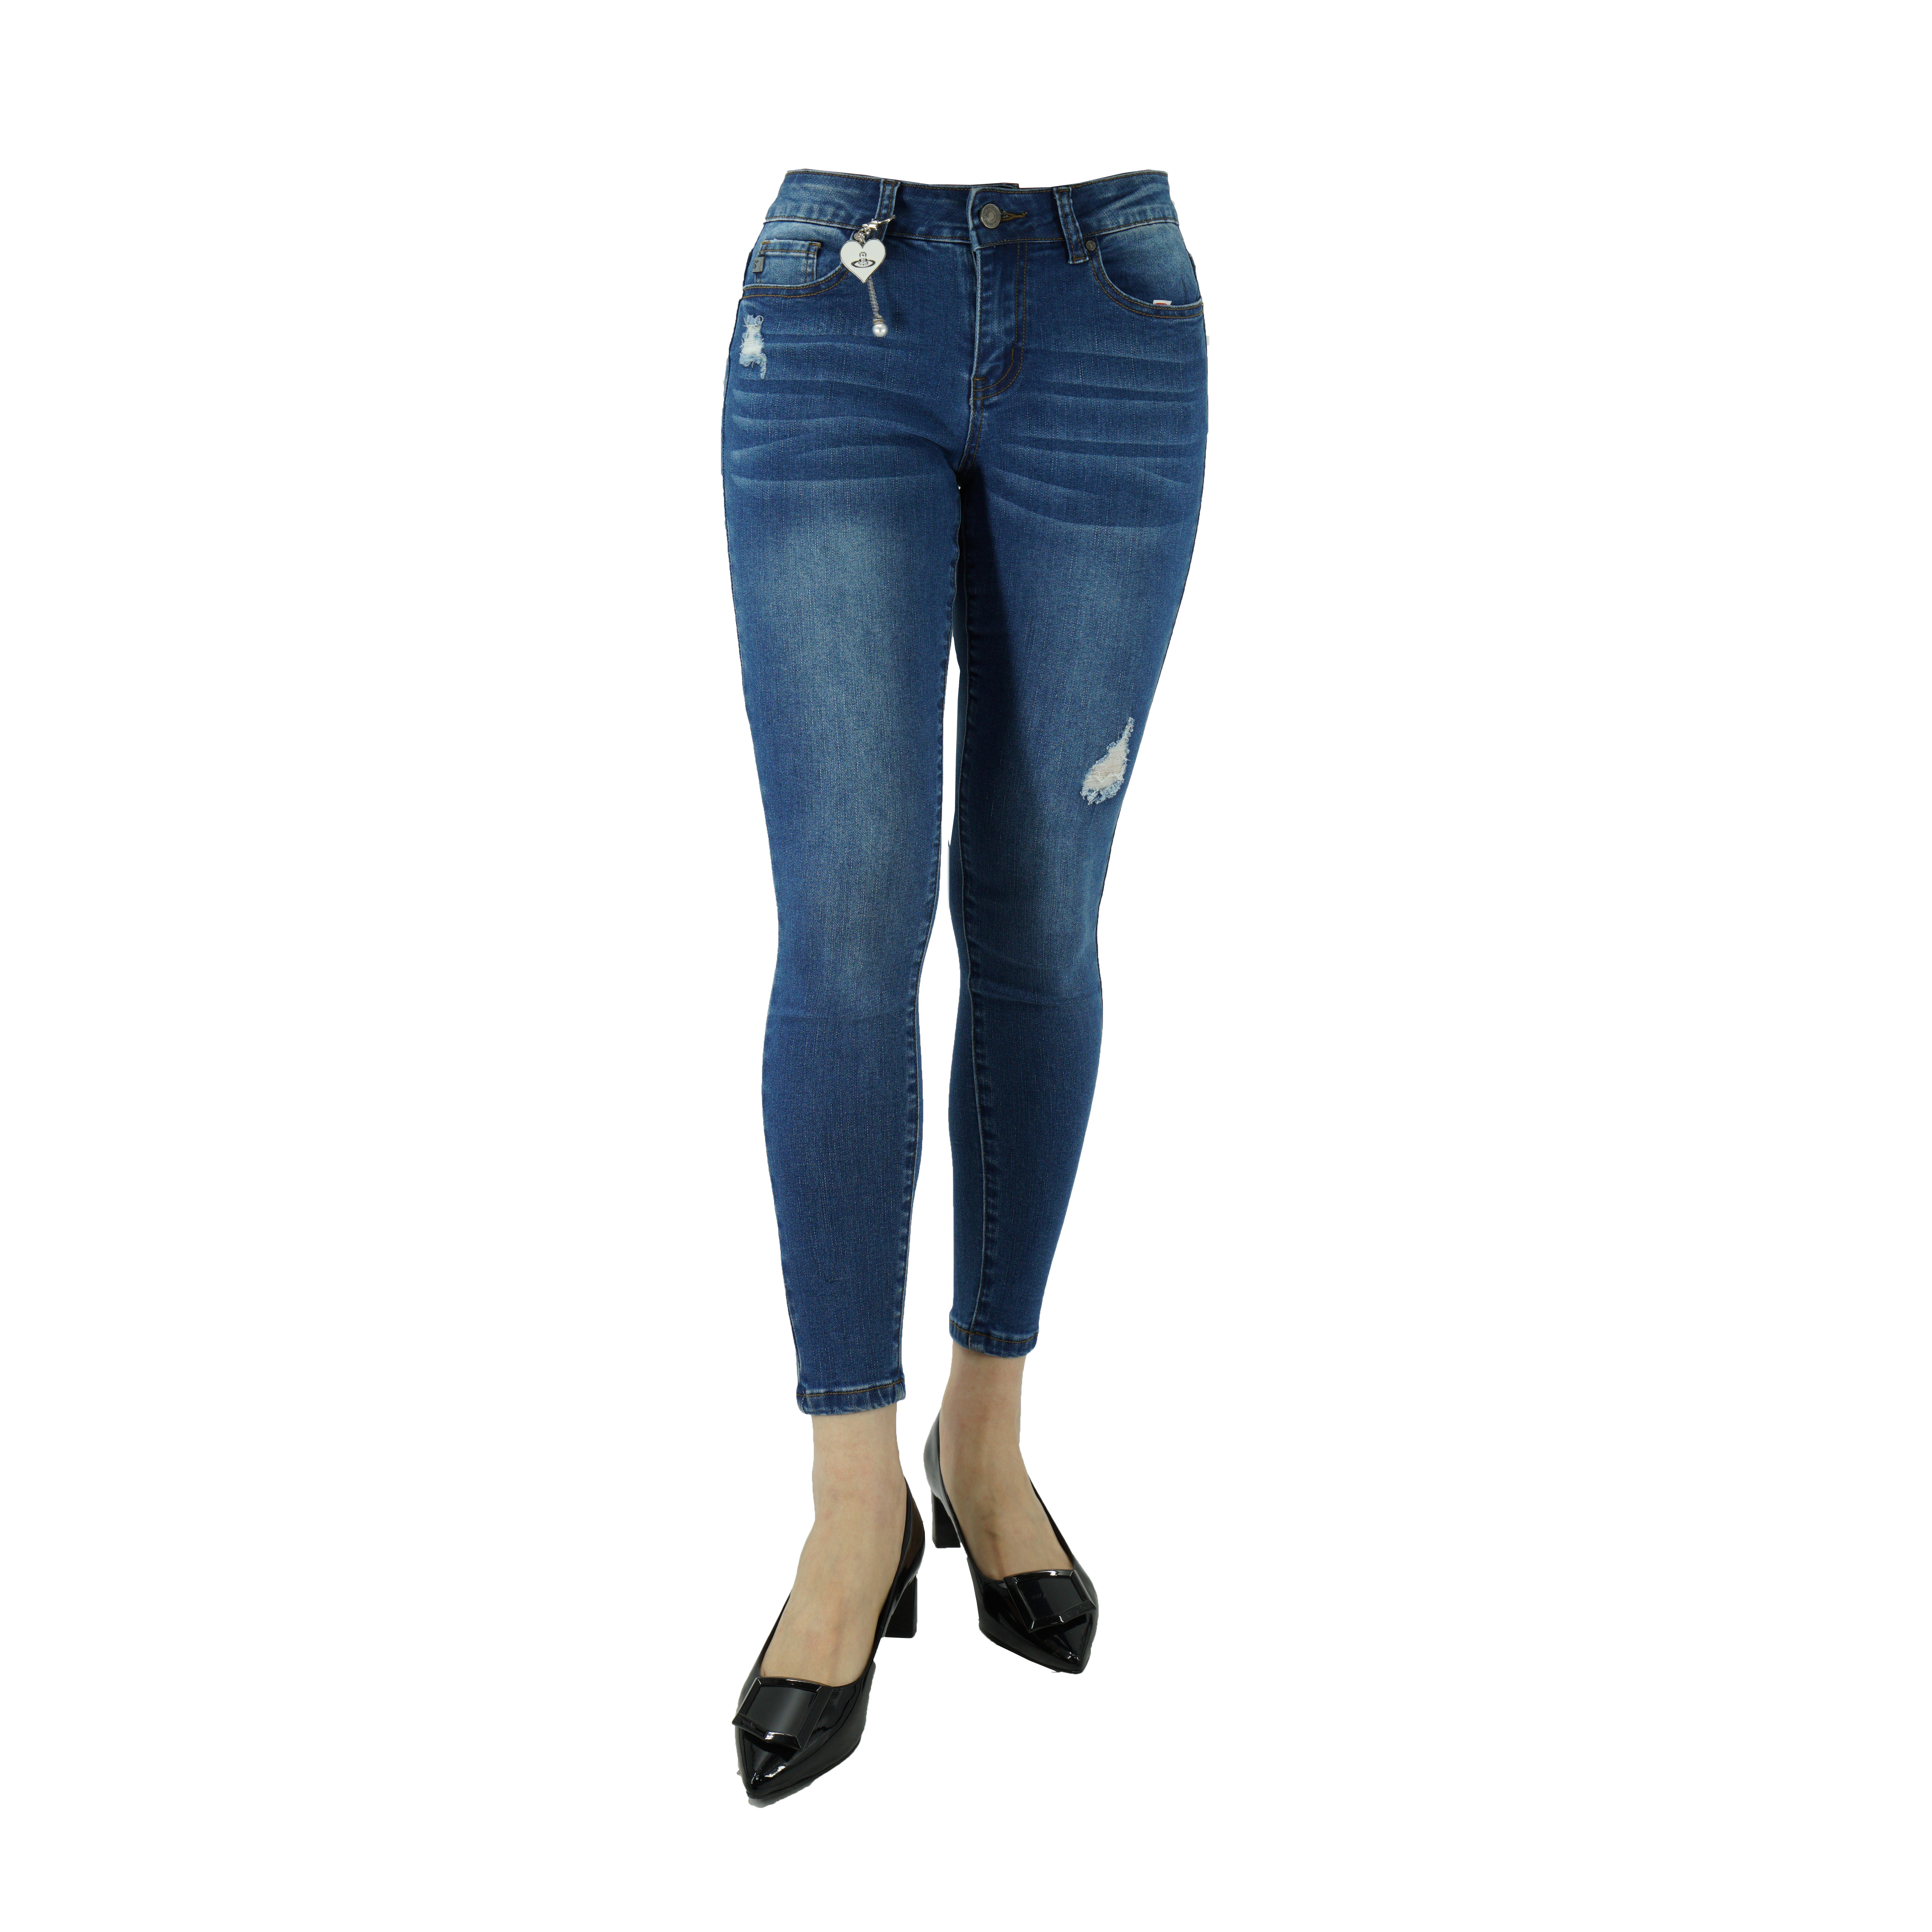 Summer Good Fabrics Jeans Pencil Pants women casual trousers jean of woman ladys jeans paint